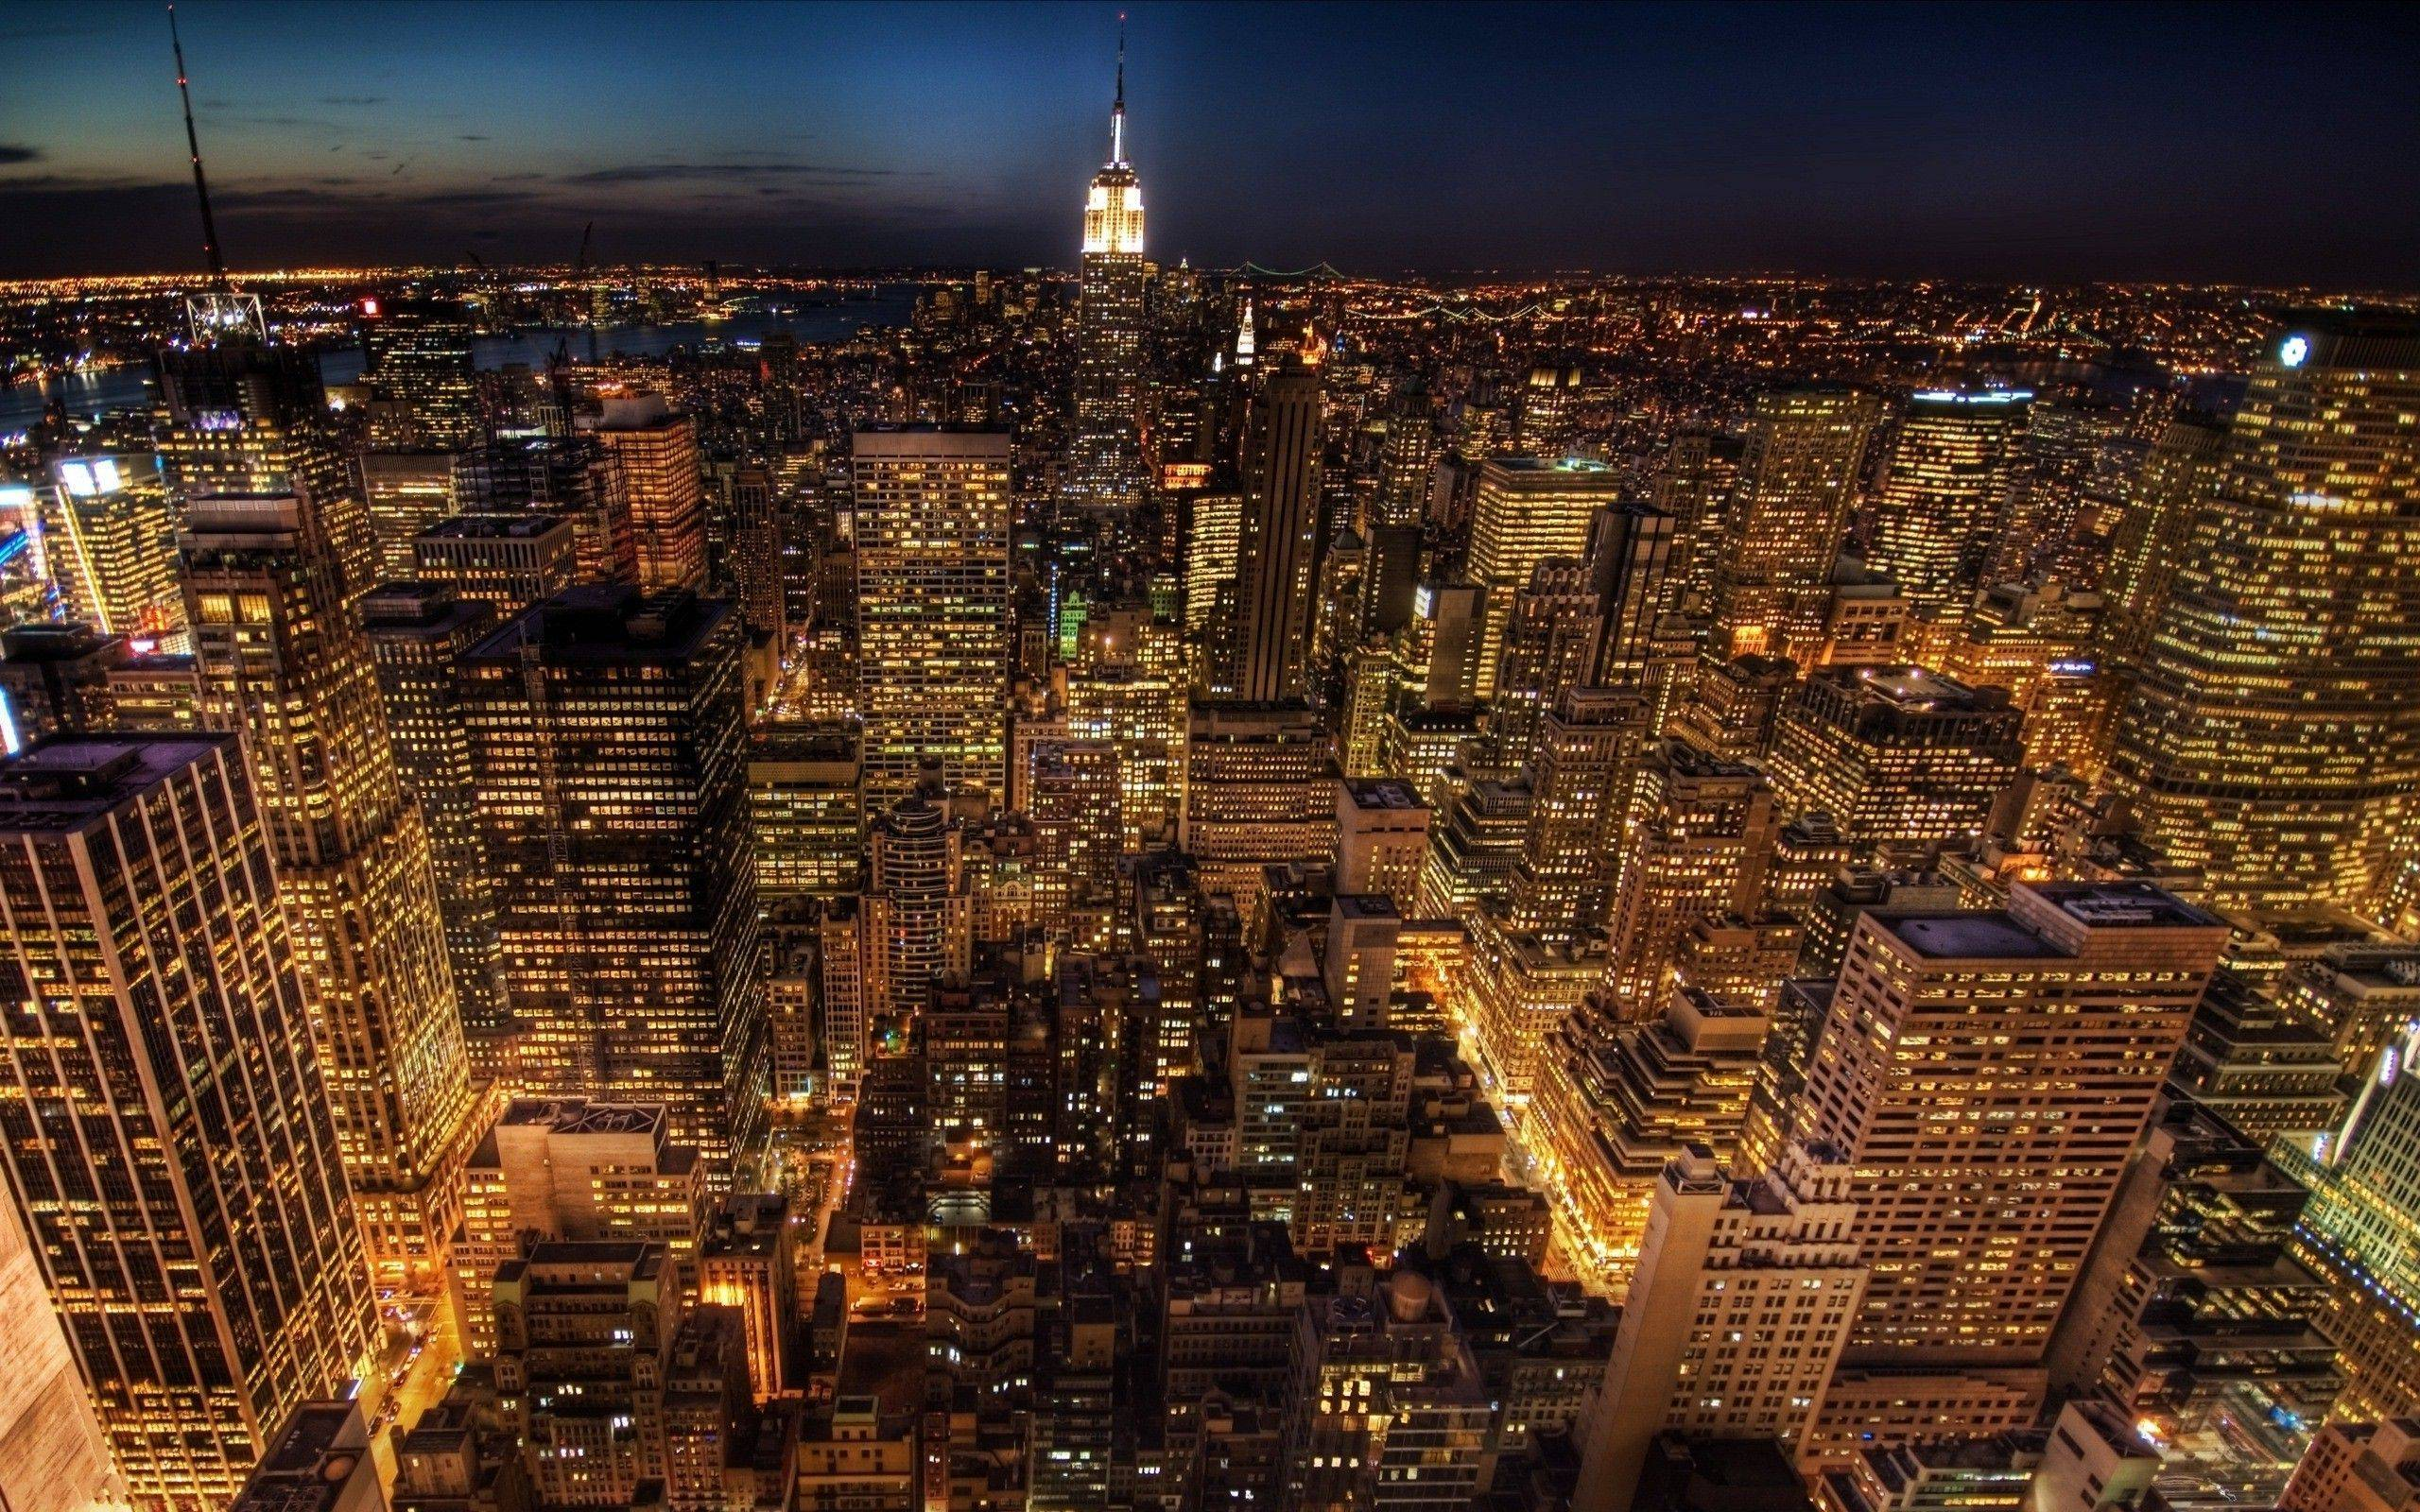 NYC At Night Wallpapers 2560x1600